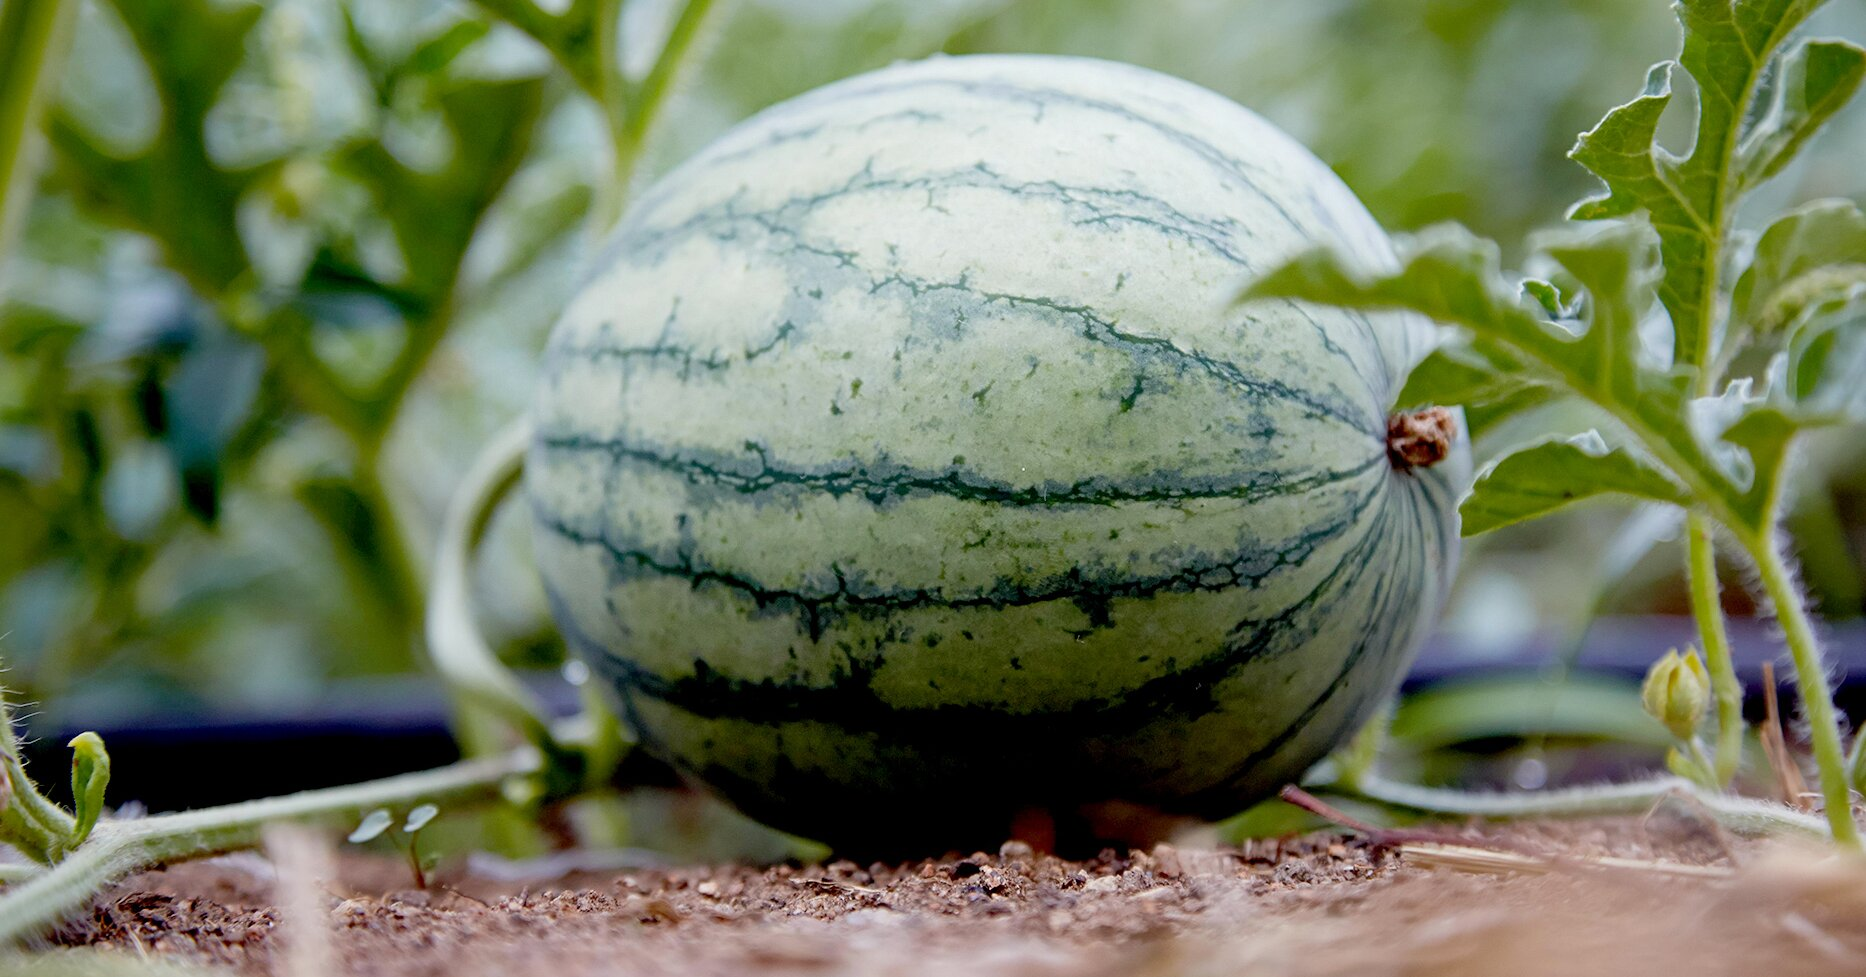 How to Grow the Sweetest, Juiciest Watermelons for the Perfect Summer Treat